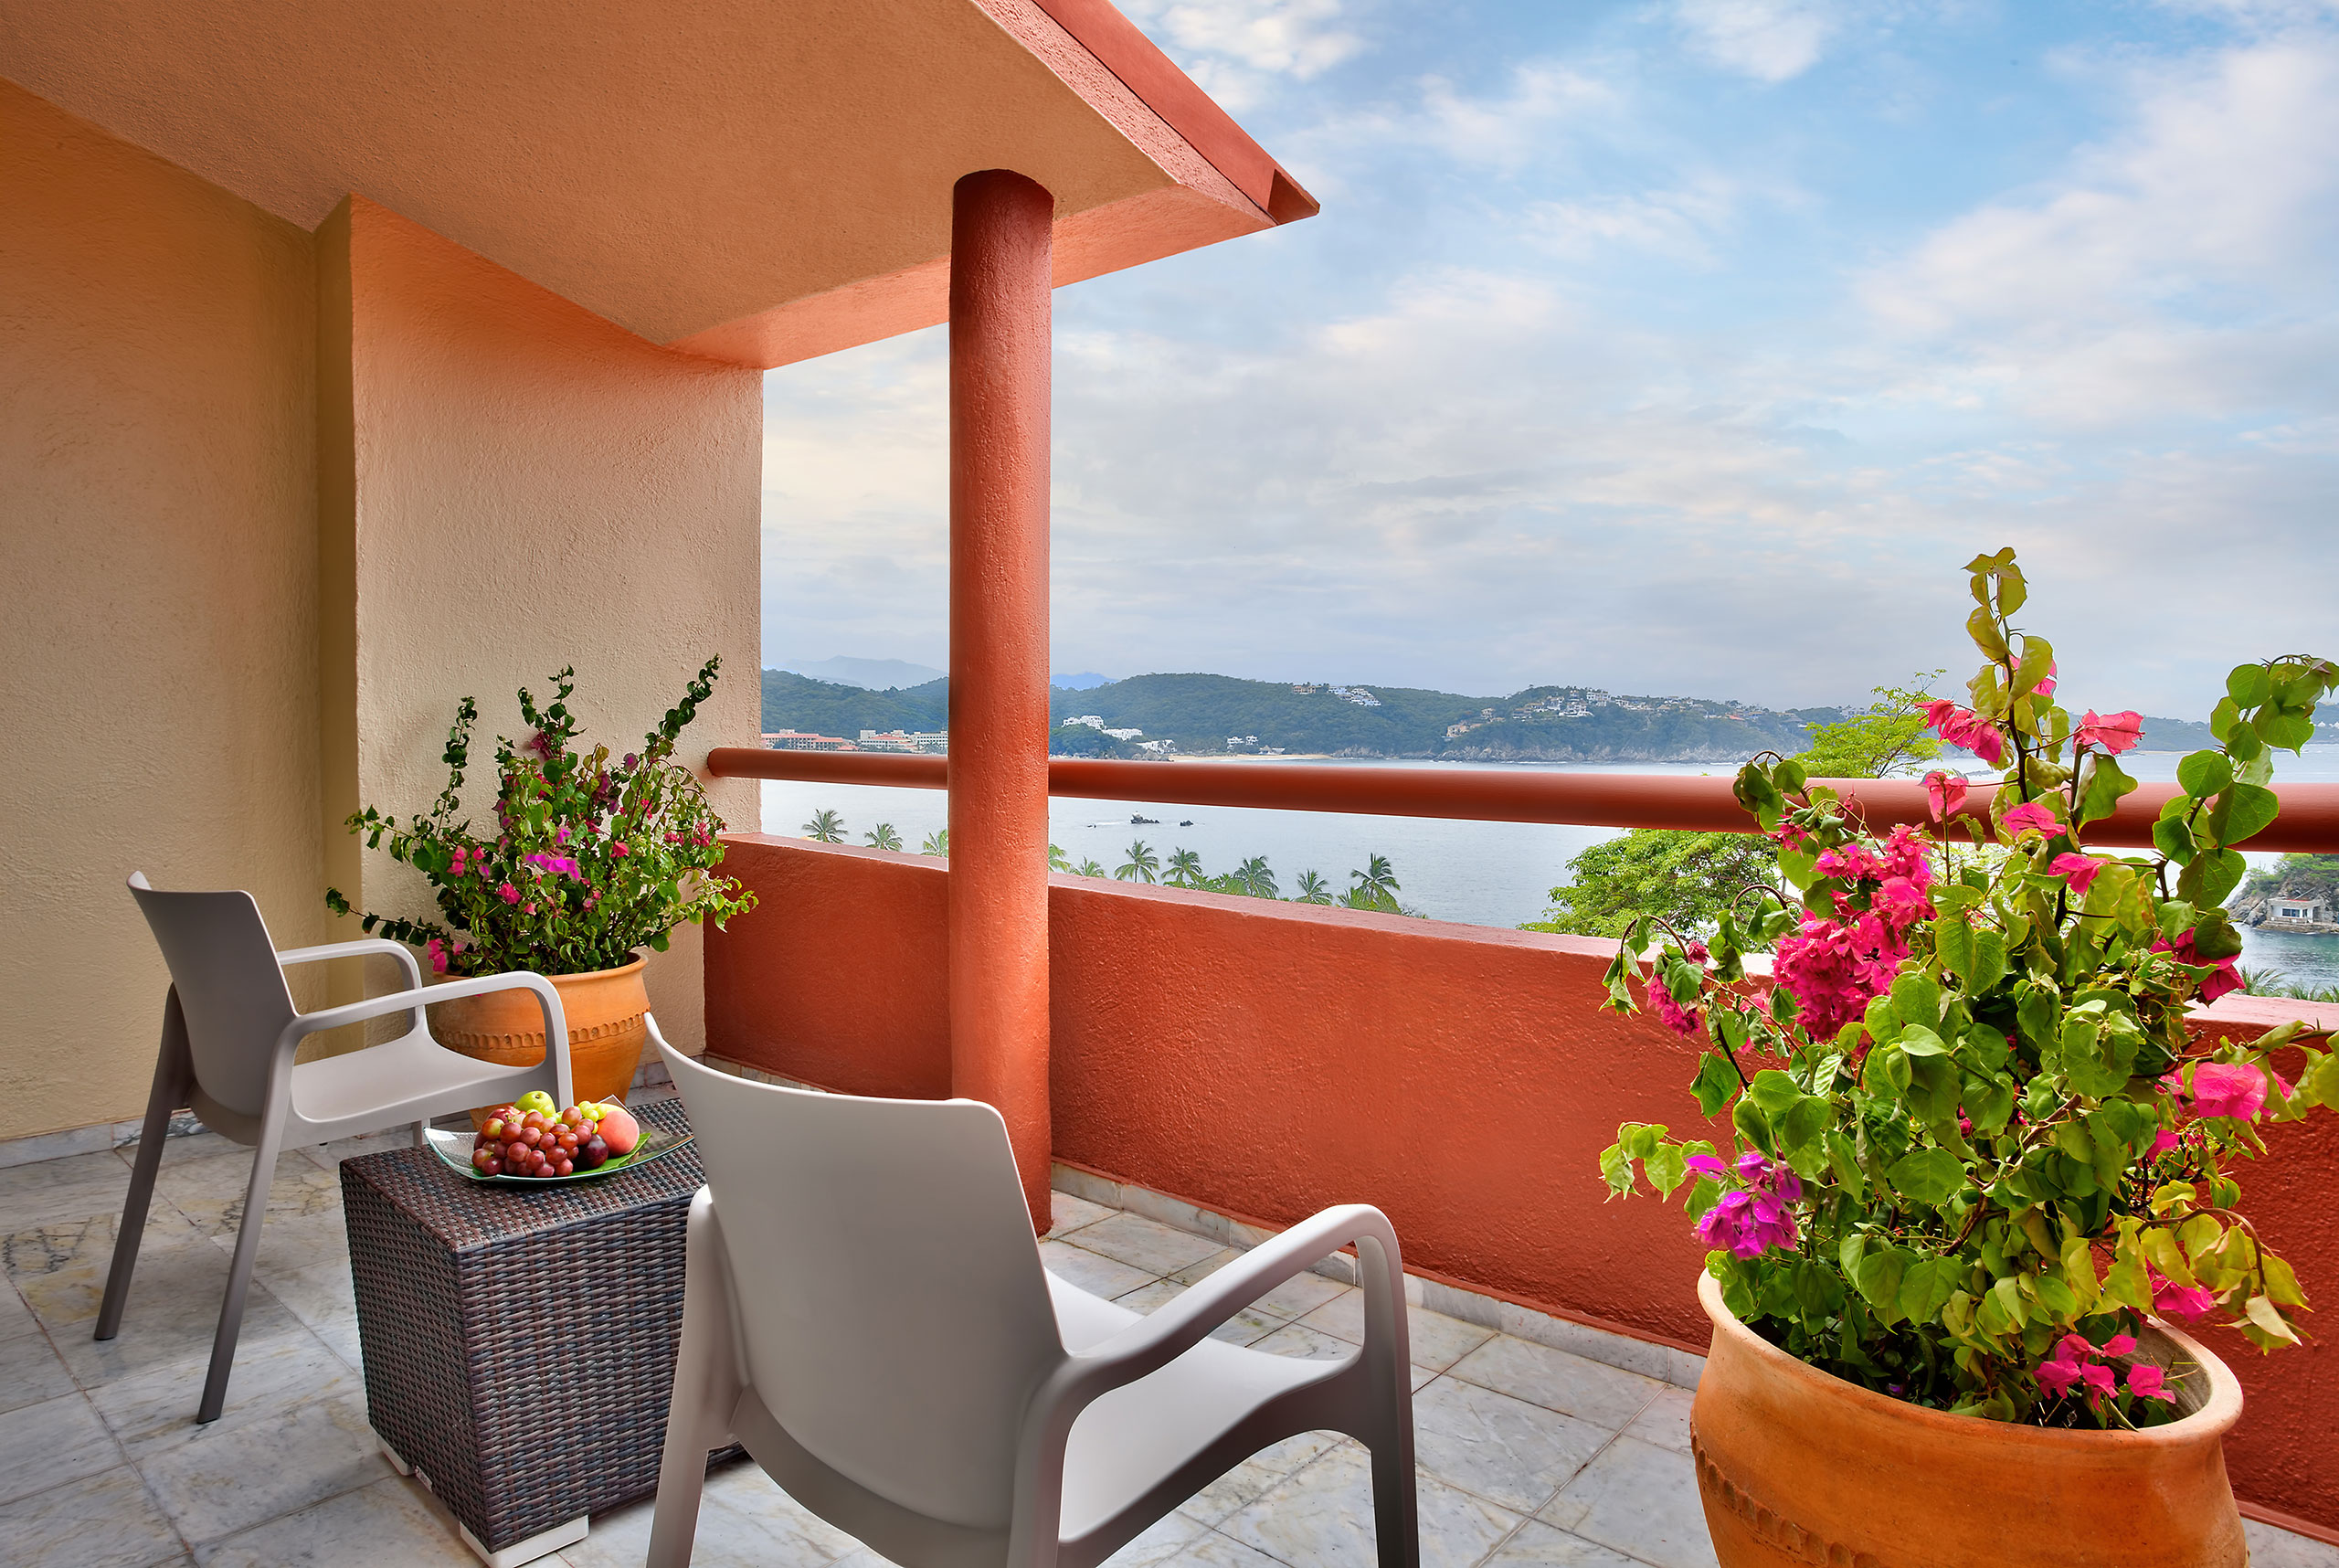 Junior Suite balcony at Hotel Las Brisas Huatulco